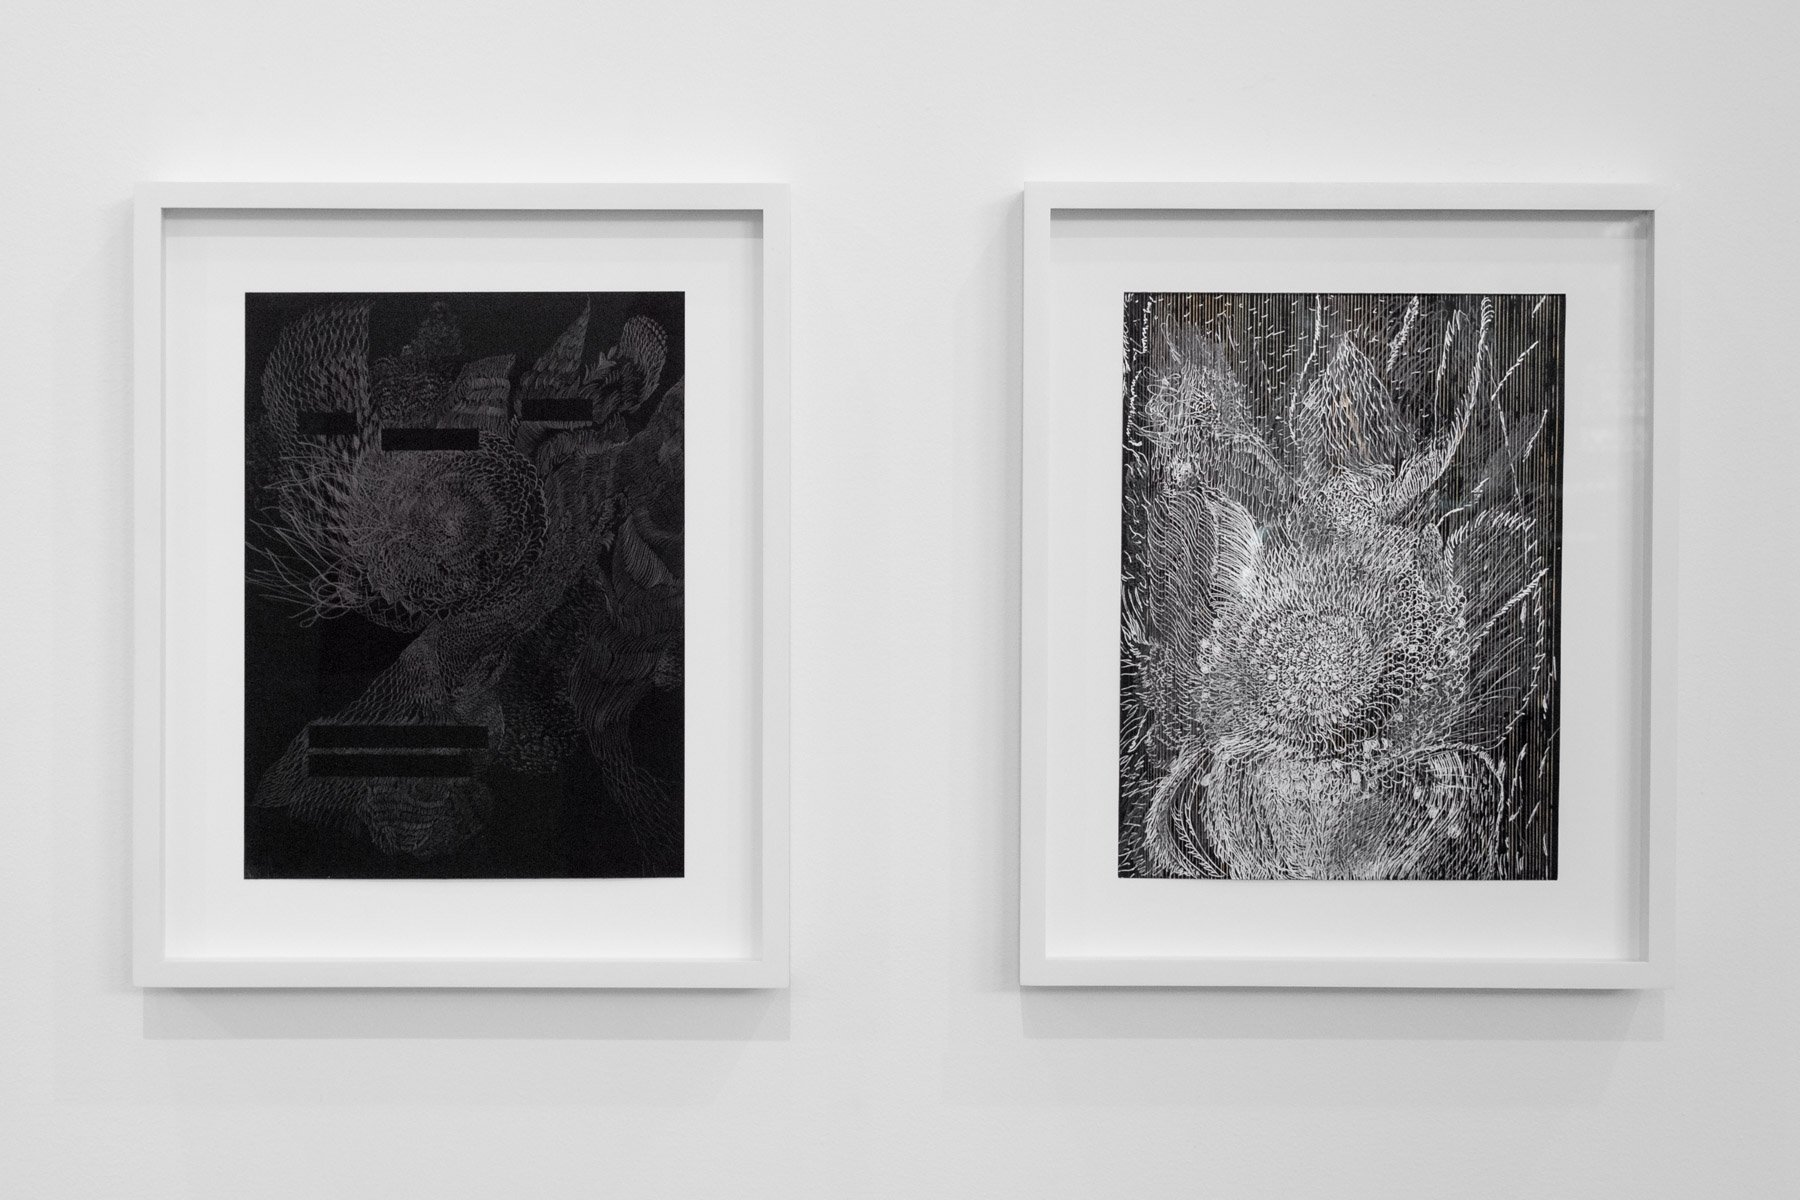 installation view of two drawings by Bahar Behbahani.